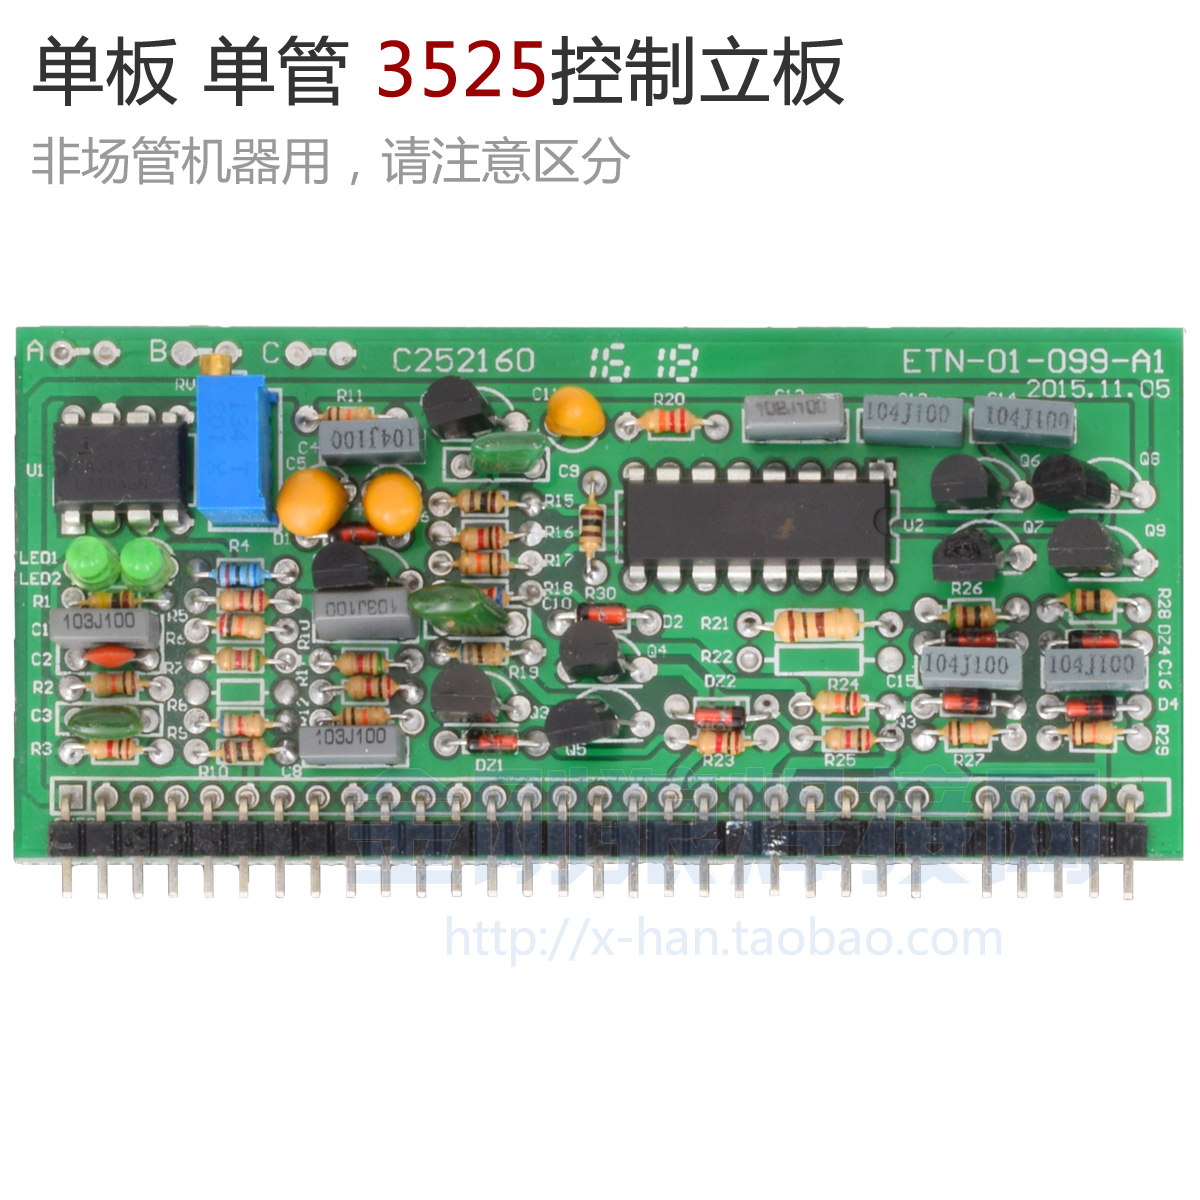 mosfet small control module wtih chip 3525 for zx7 tig inverter welding machine with adjustable potentiometer [ 1200 x 1200 Pixel ]